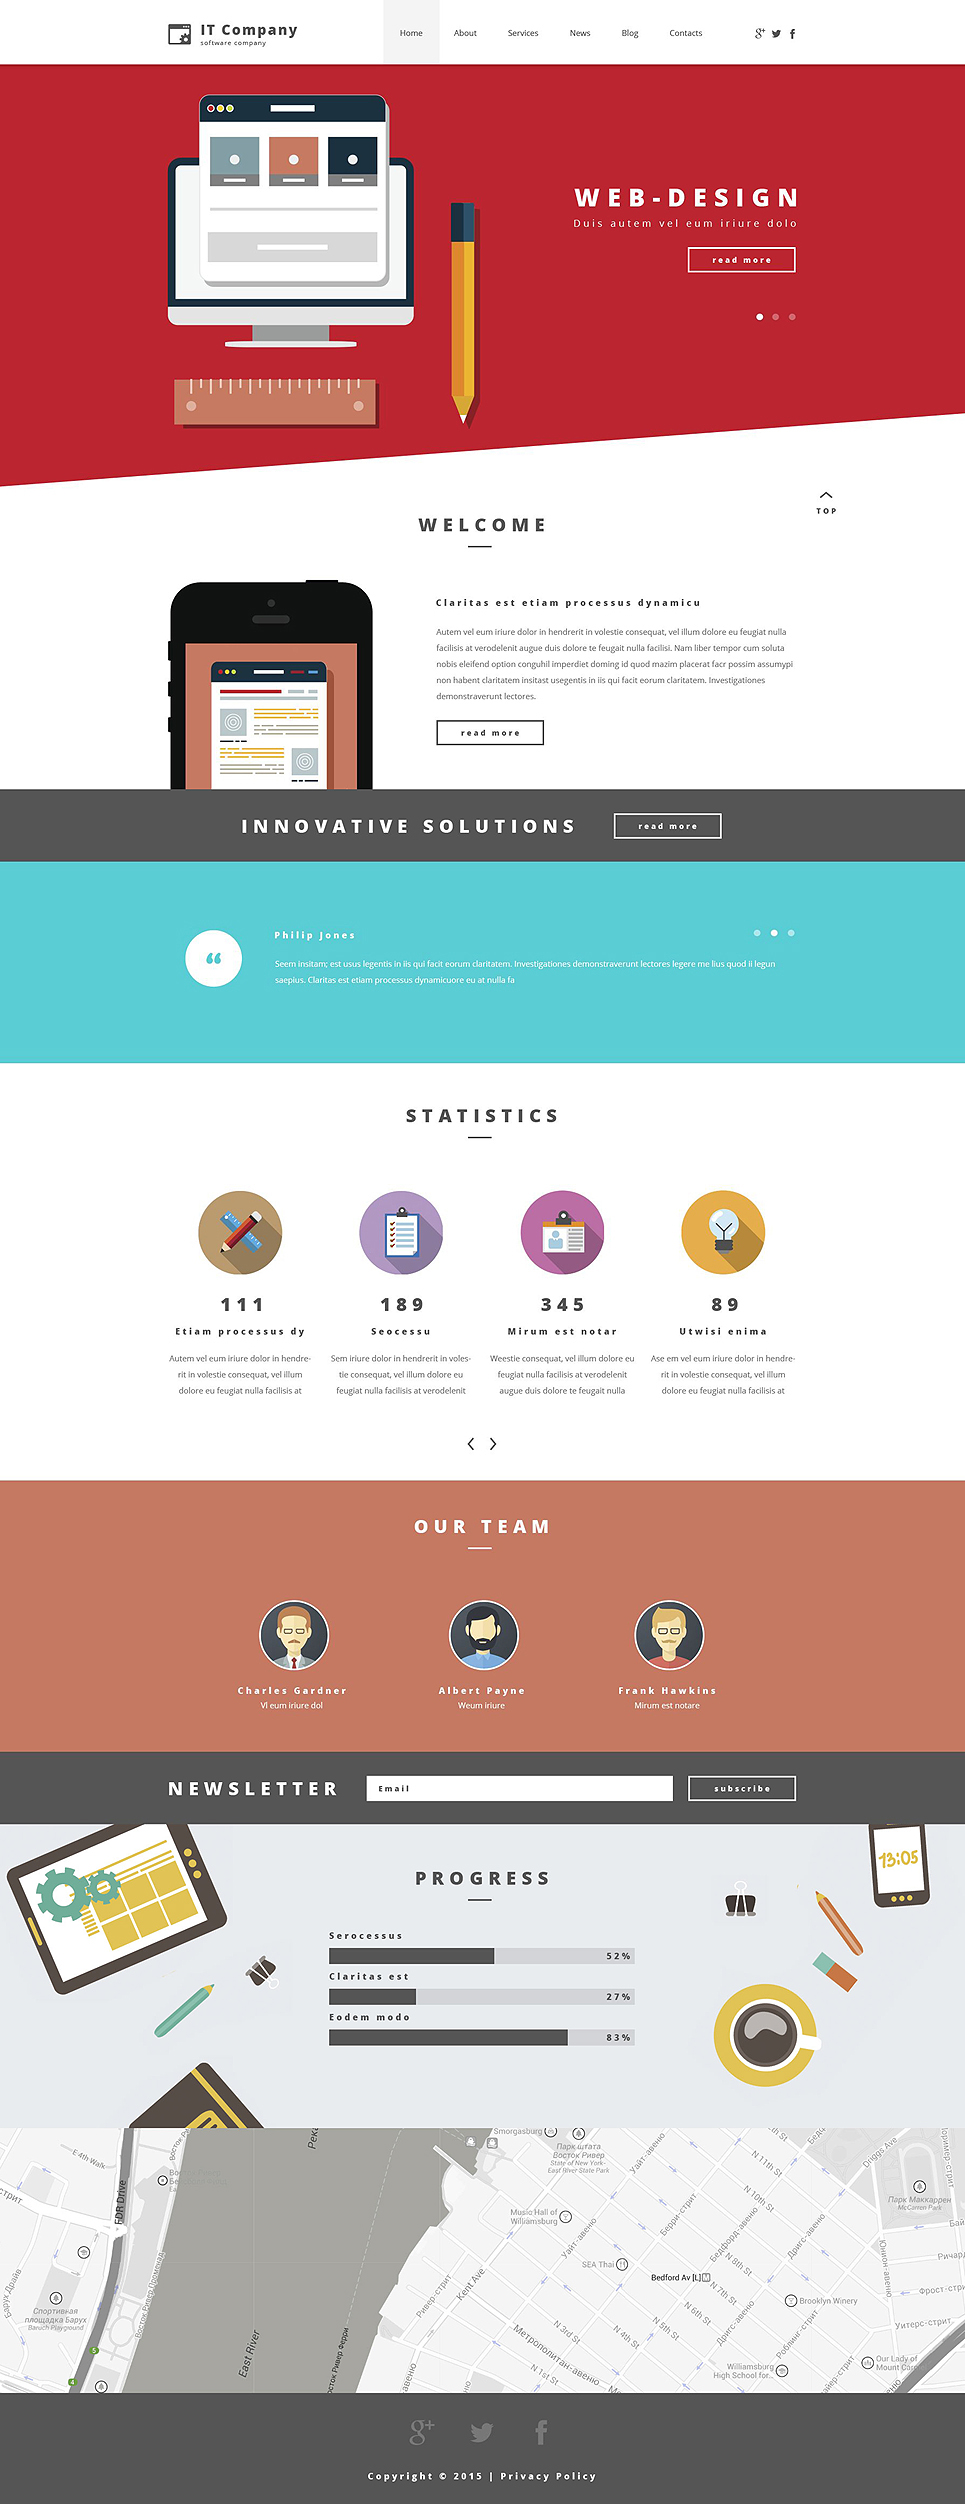 IT Company (theme for your WordPress site) Item Picture